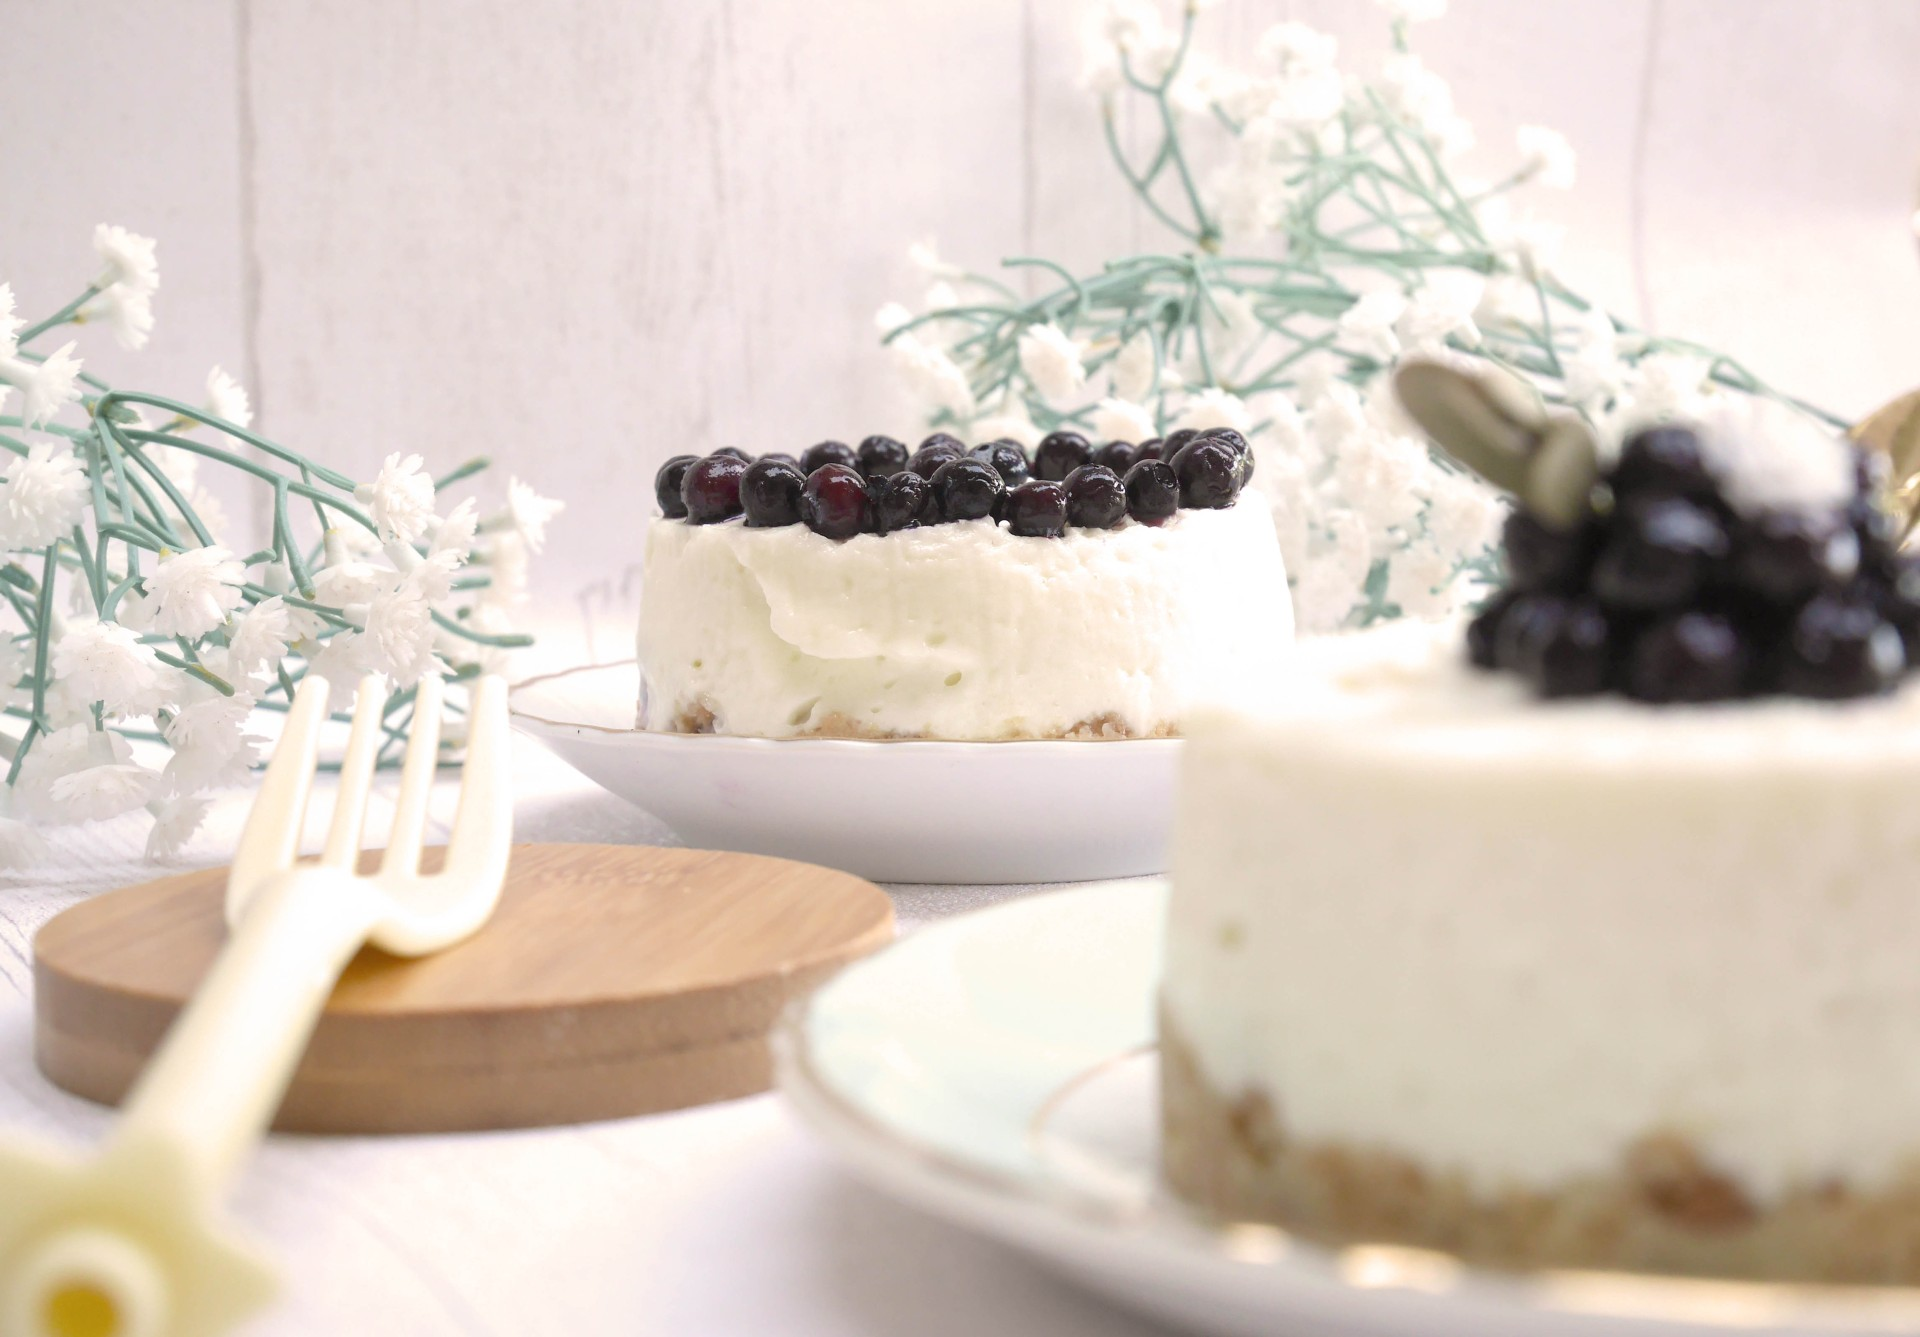 RECETTE-CHEESECAKE-2